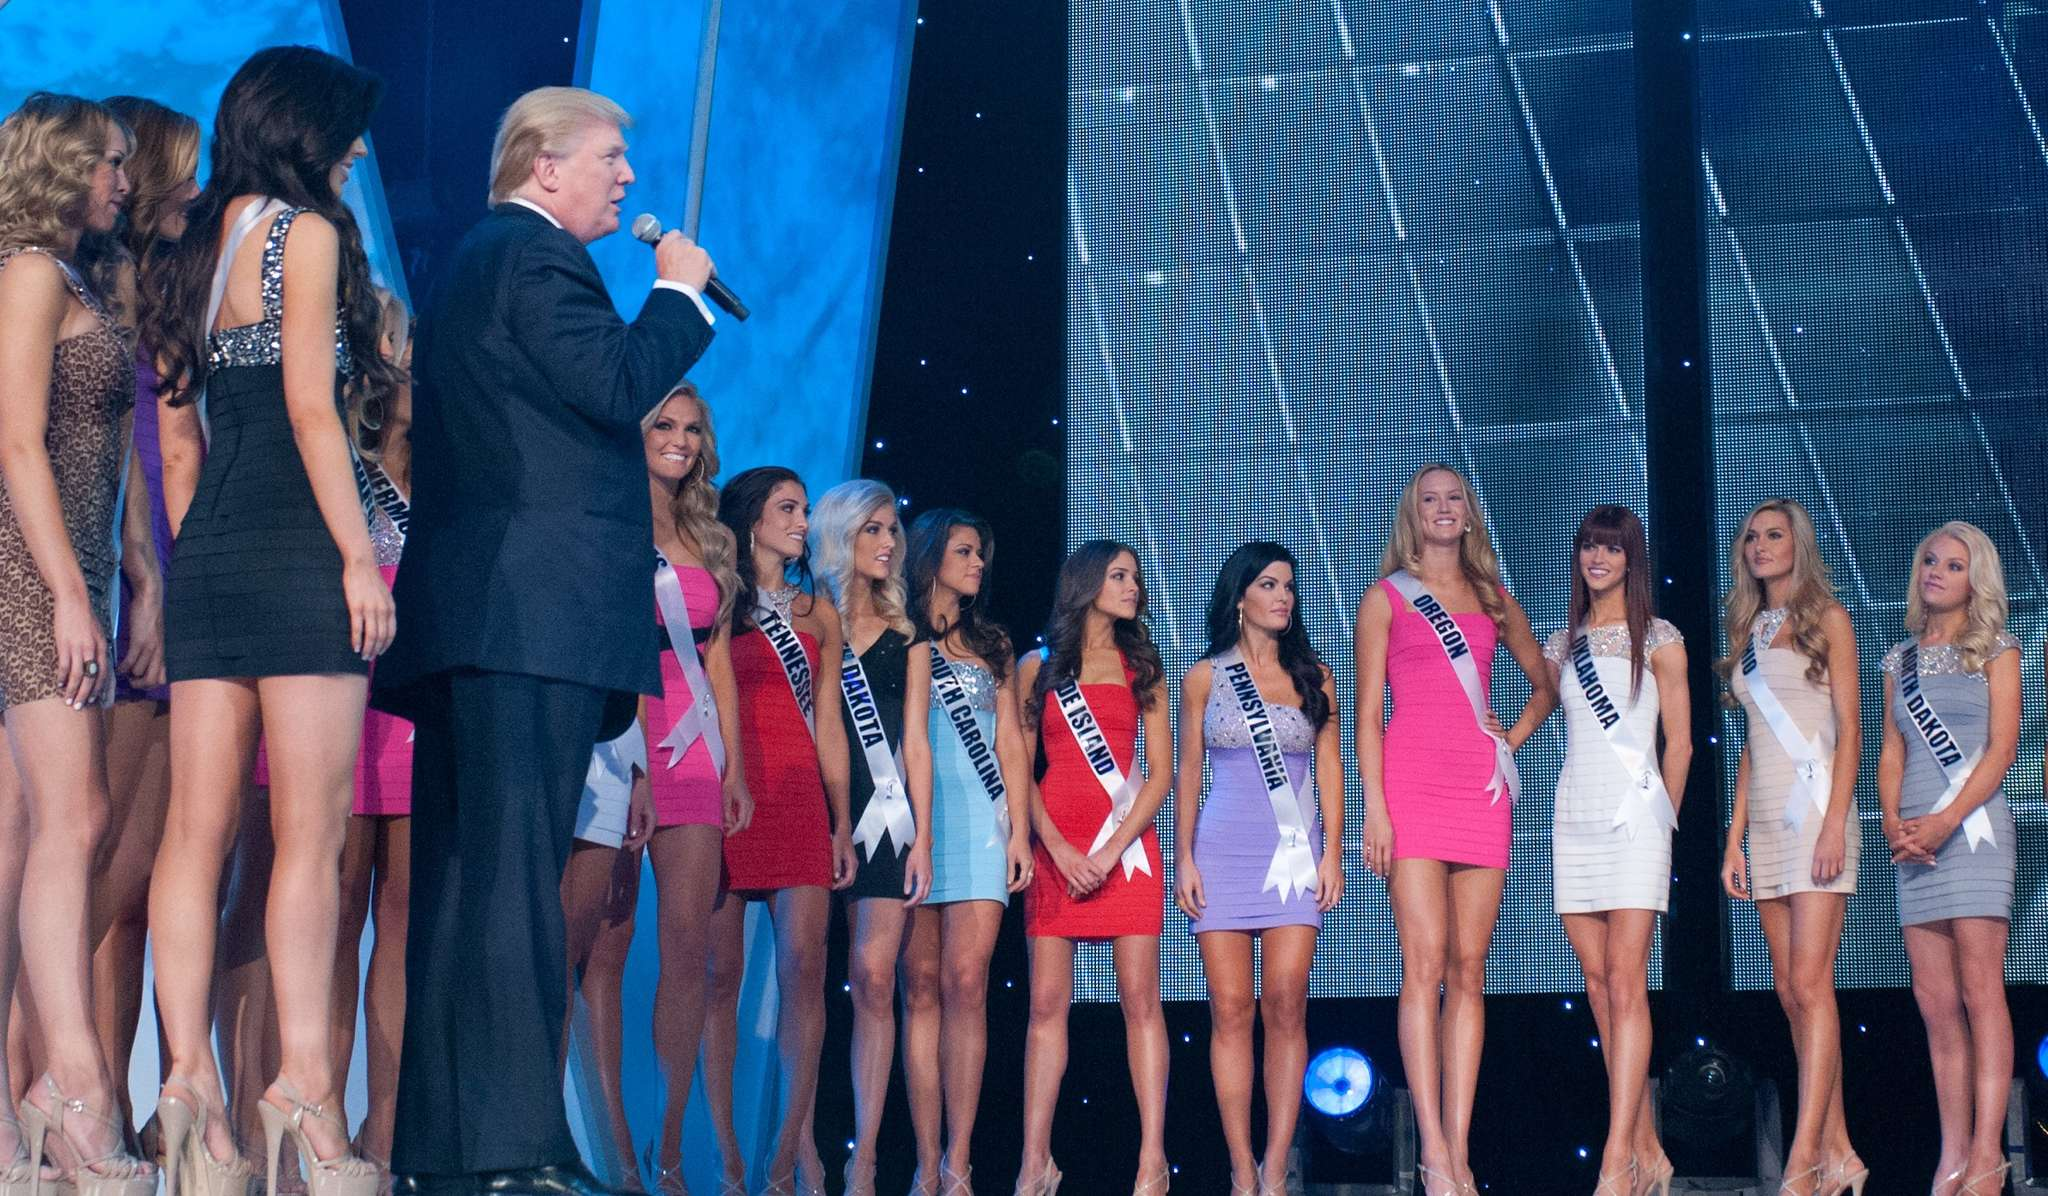 Oh, there he is: Donald Trump on stage at the 2012 Miss USA pageant, and there in the middle is Miss Pennsylvania Sheena Monnin, the beauty he would later sue for defamation because she said some things he didn´t like.